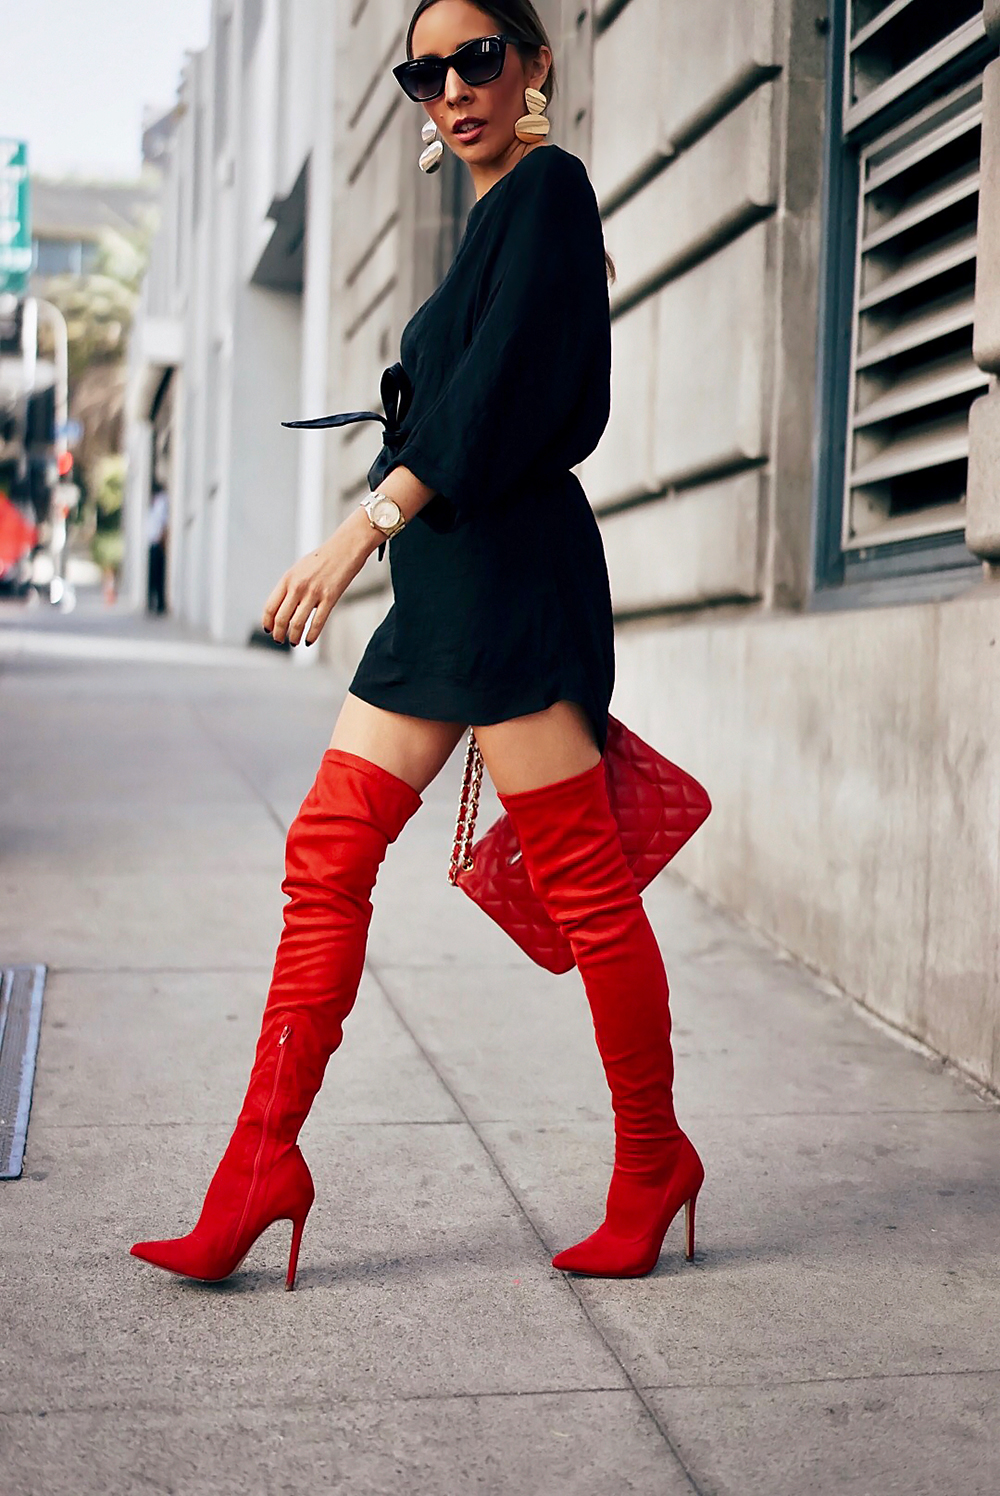 How To Wear Red Thigh High Boots